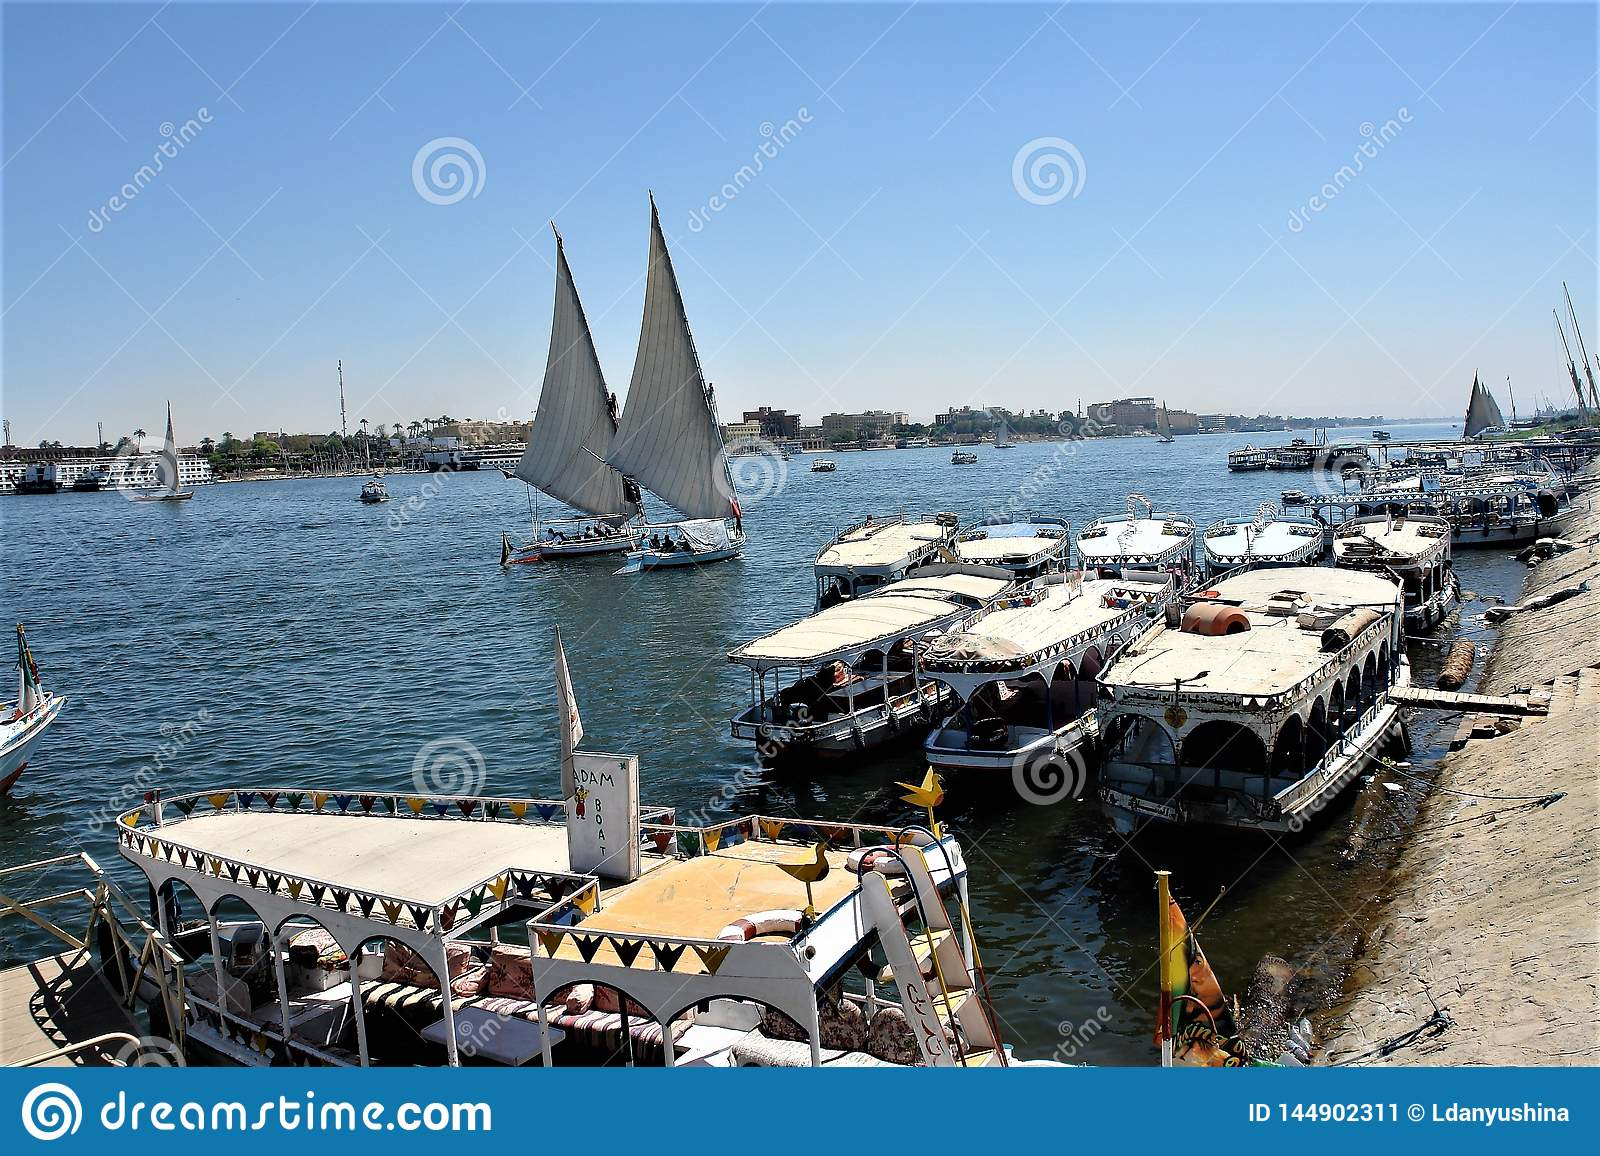 Egypt, Luxor. Cruise boats at the pier. Tourist yachts ply the river.